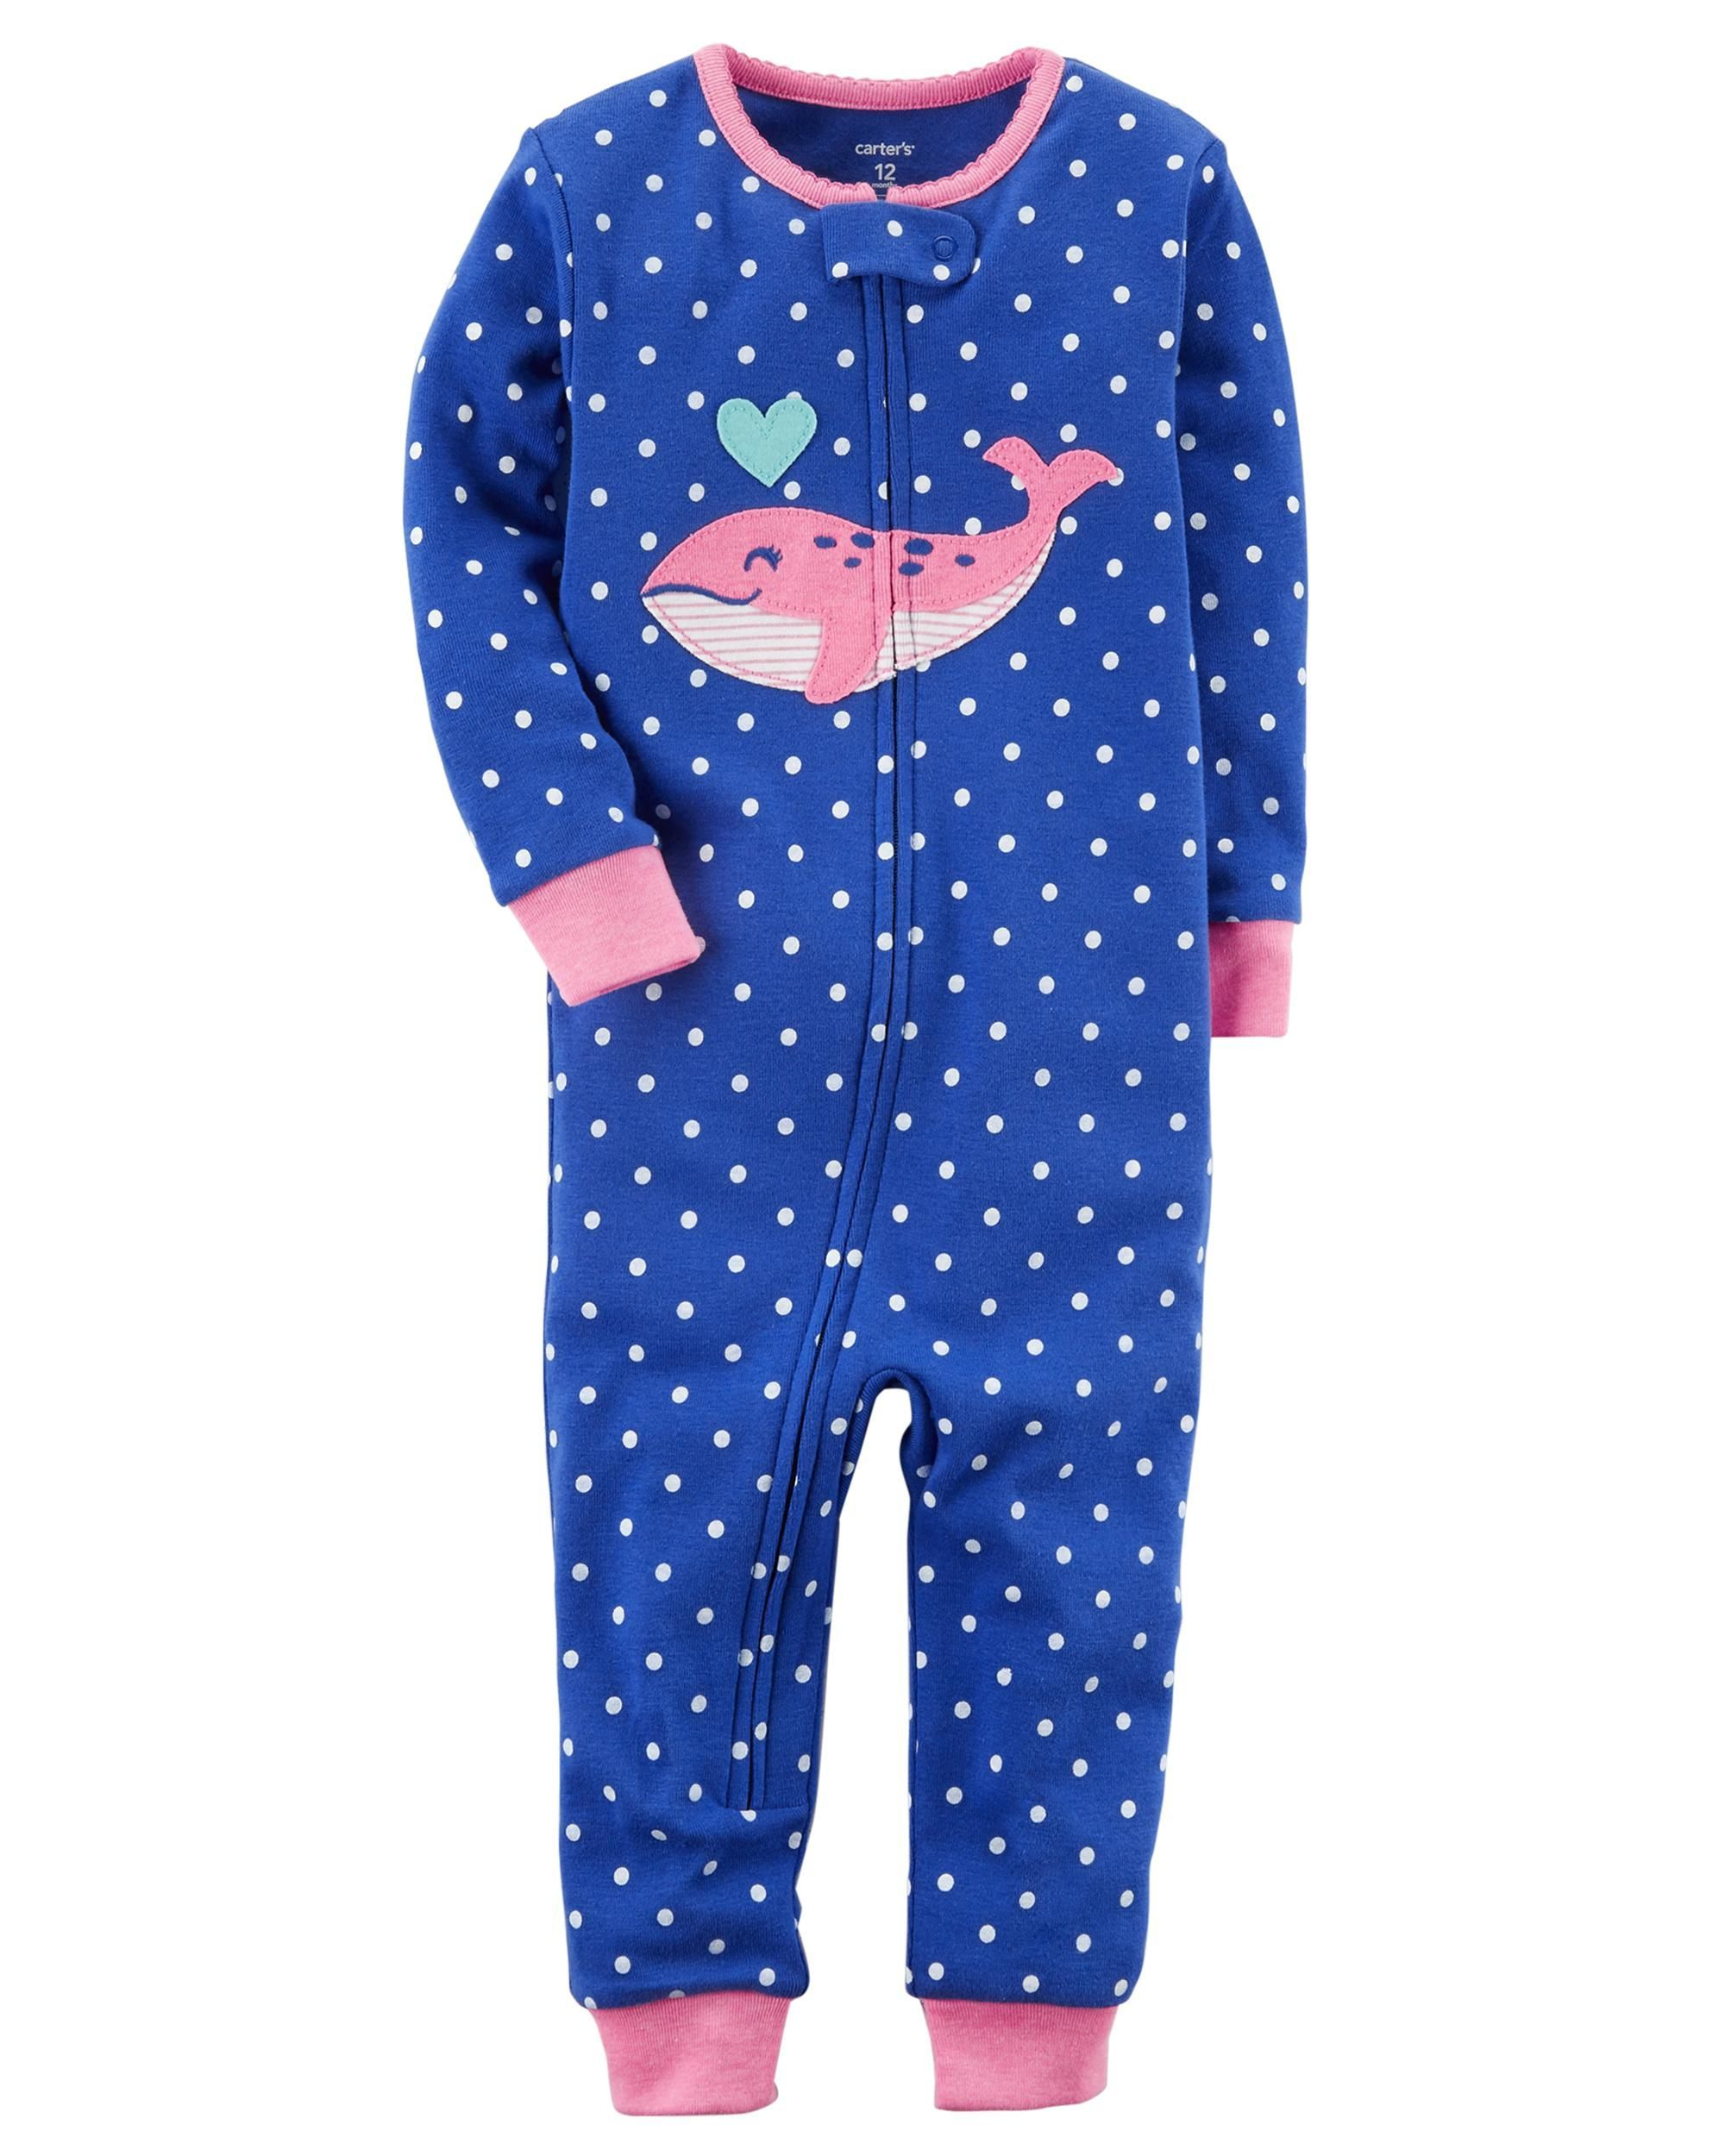 0e74aabf330b Baby Girl 1-Piece Neon Snug Fit Cotton Footless PJs